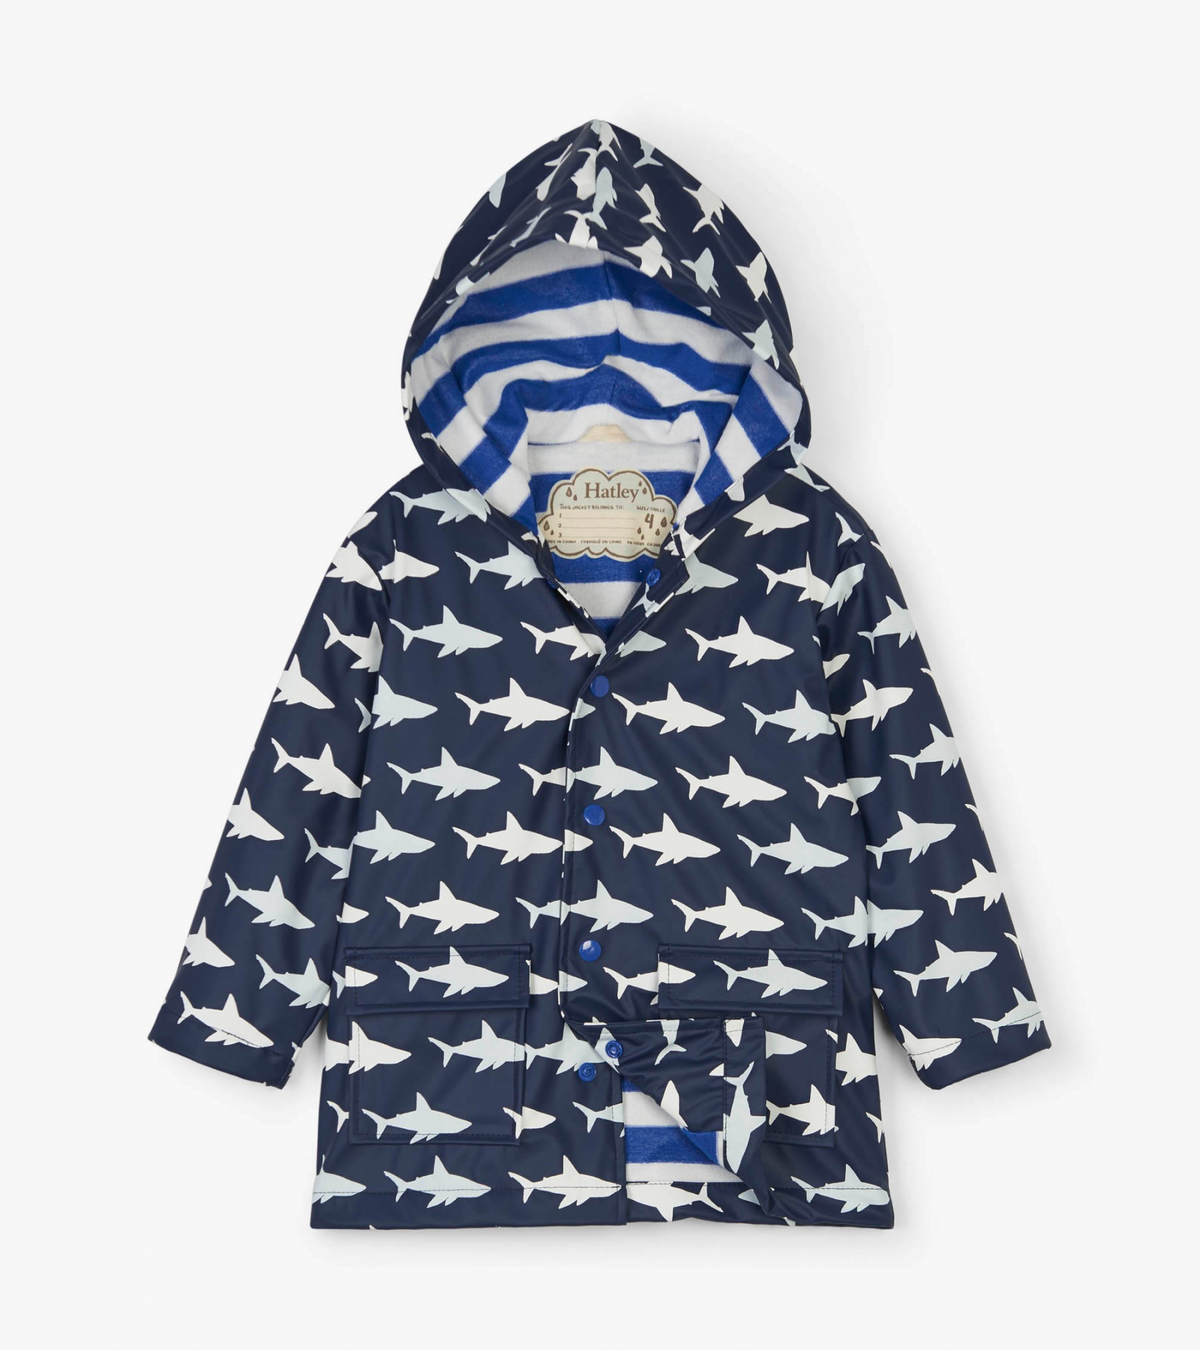 Color Changing Shark Frenzy Raincoat